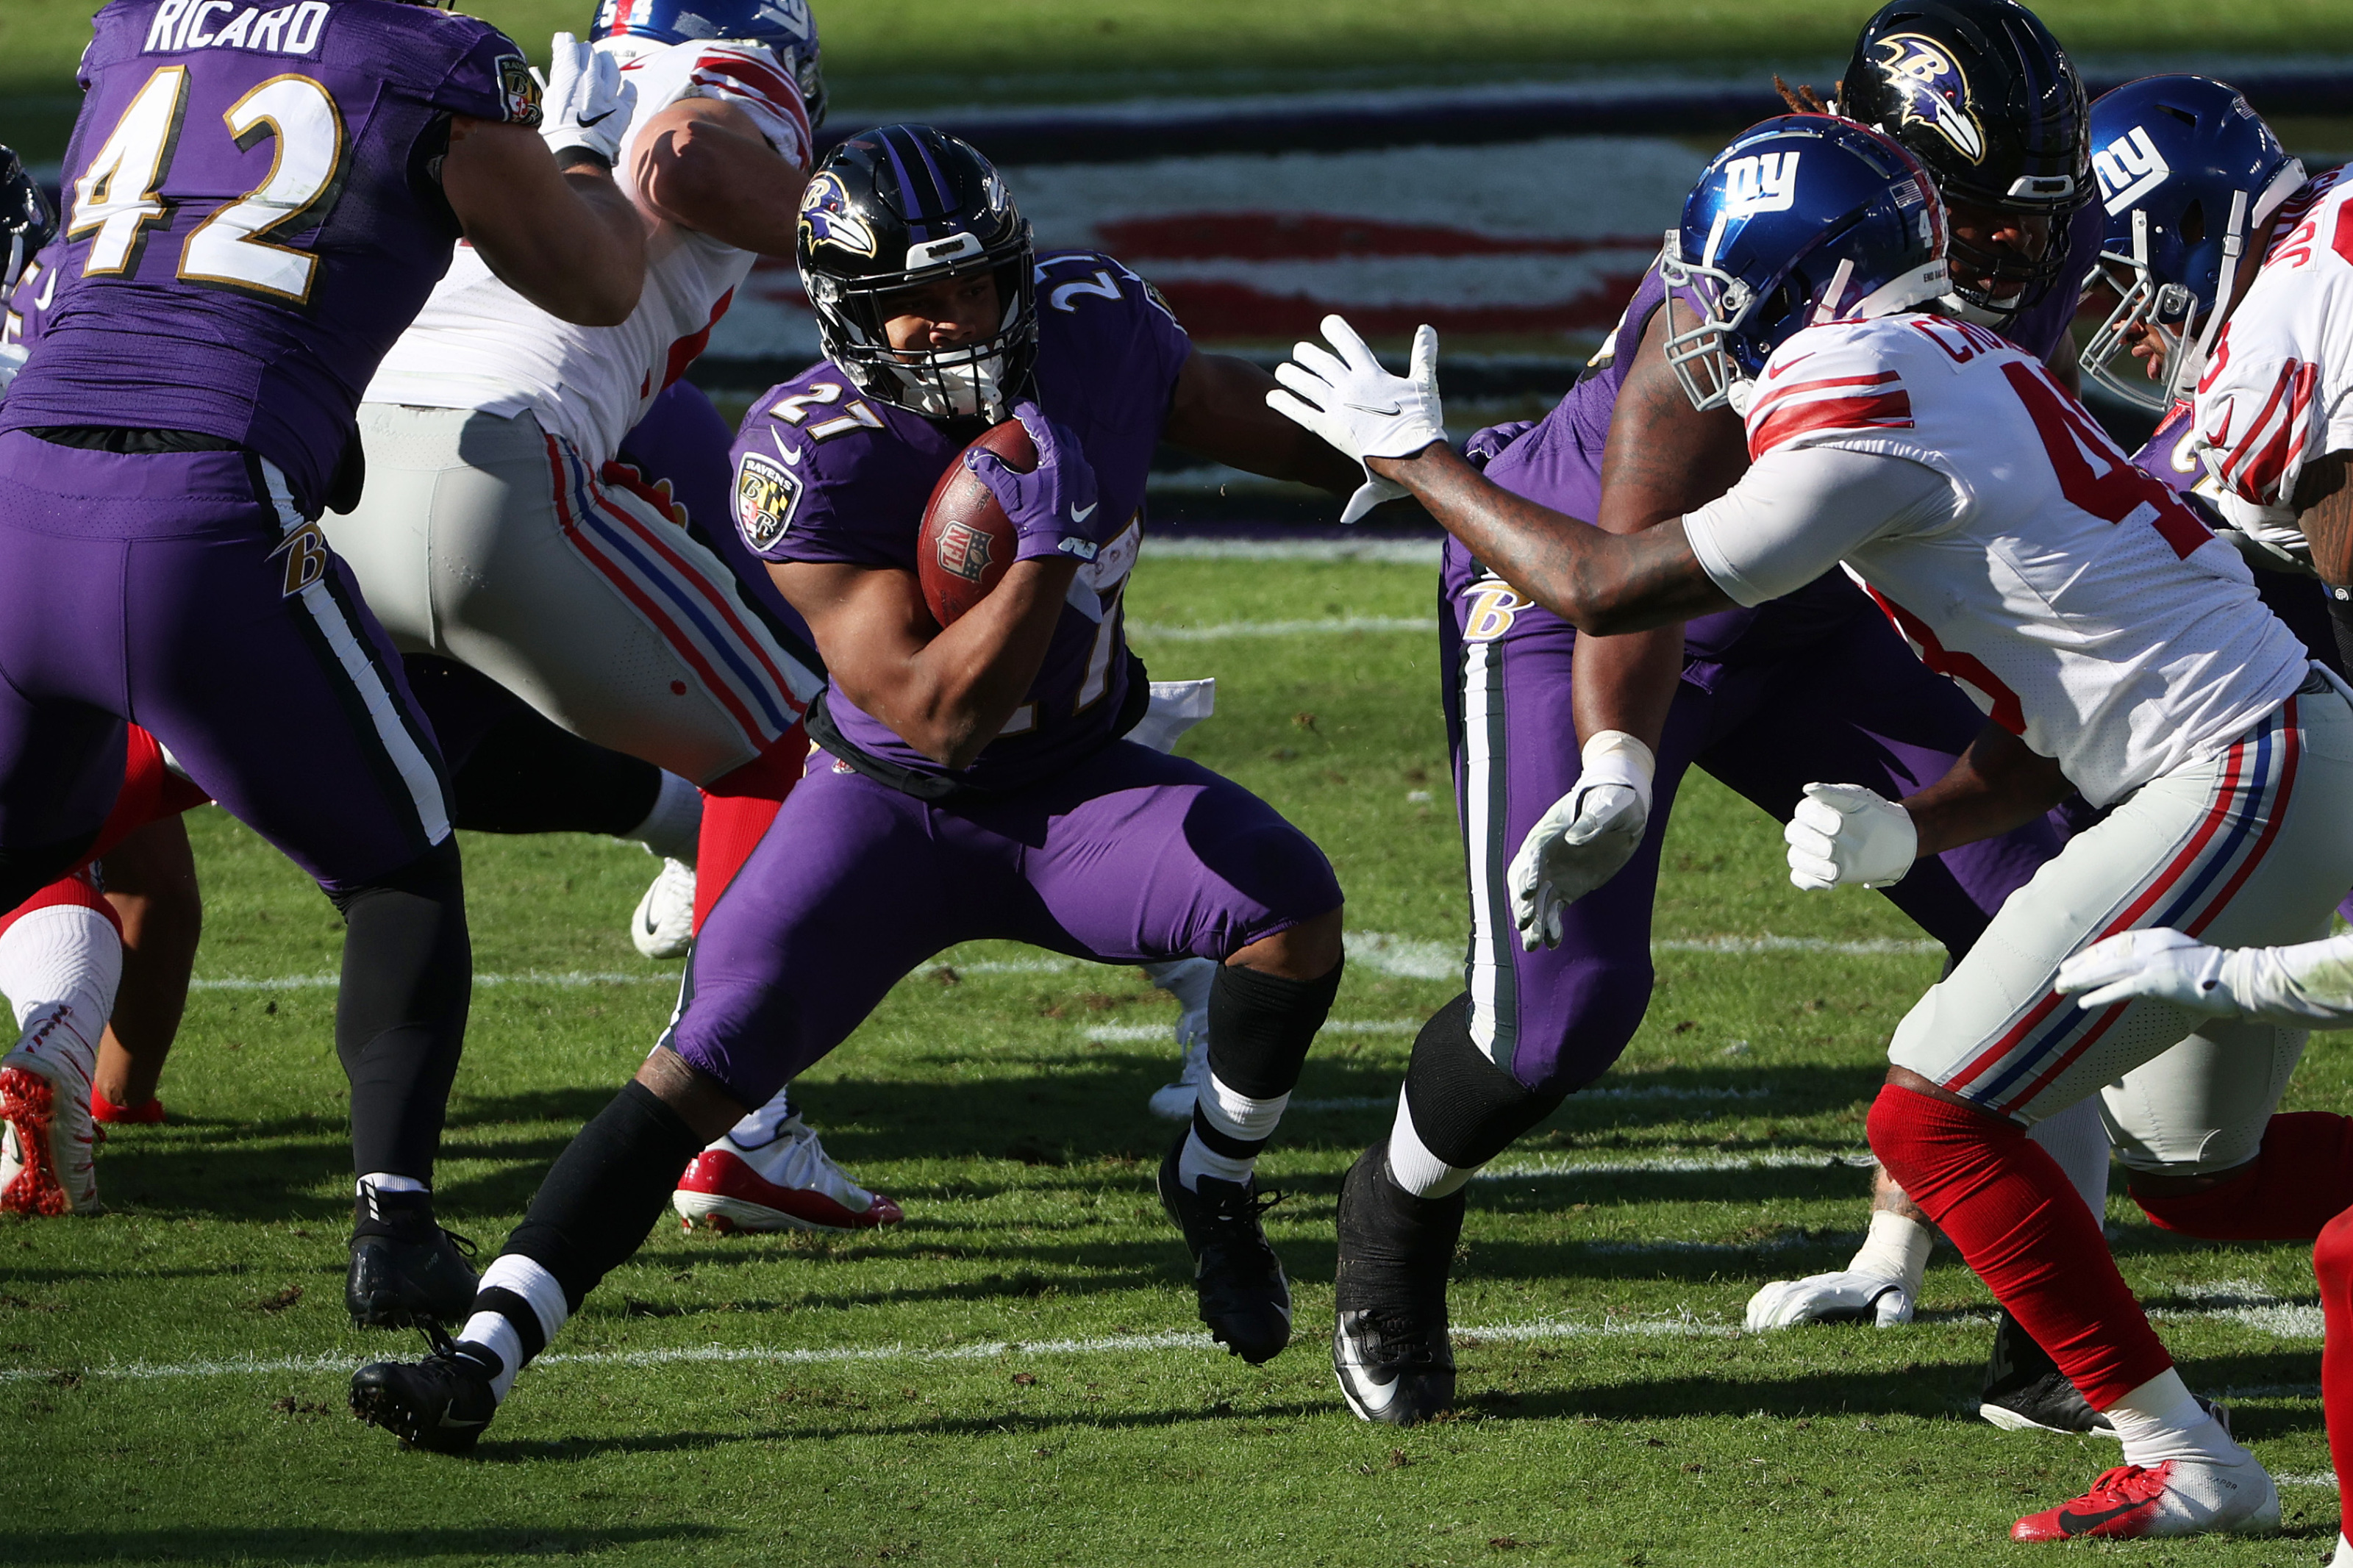 J.K. Dobbins broke a Ravens rookie record that has stood for 20 years